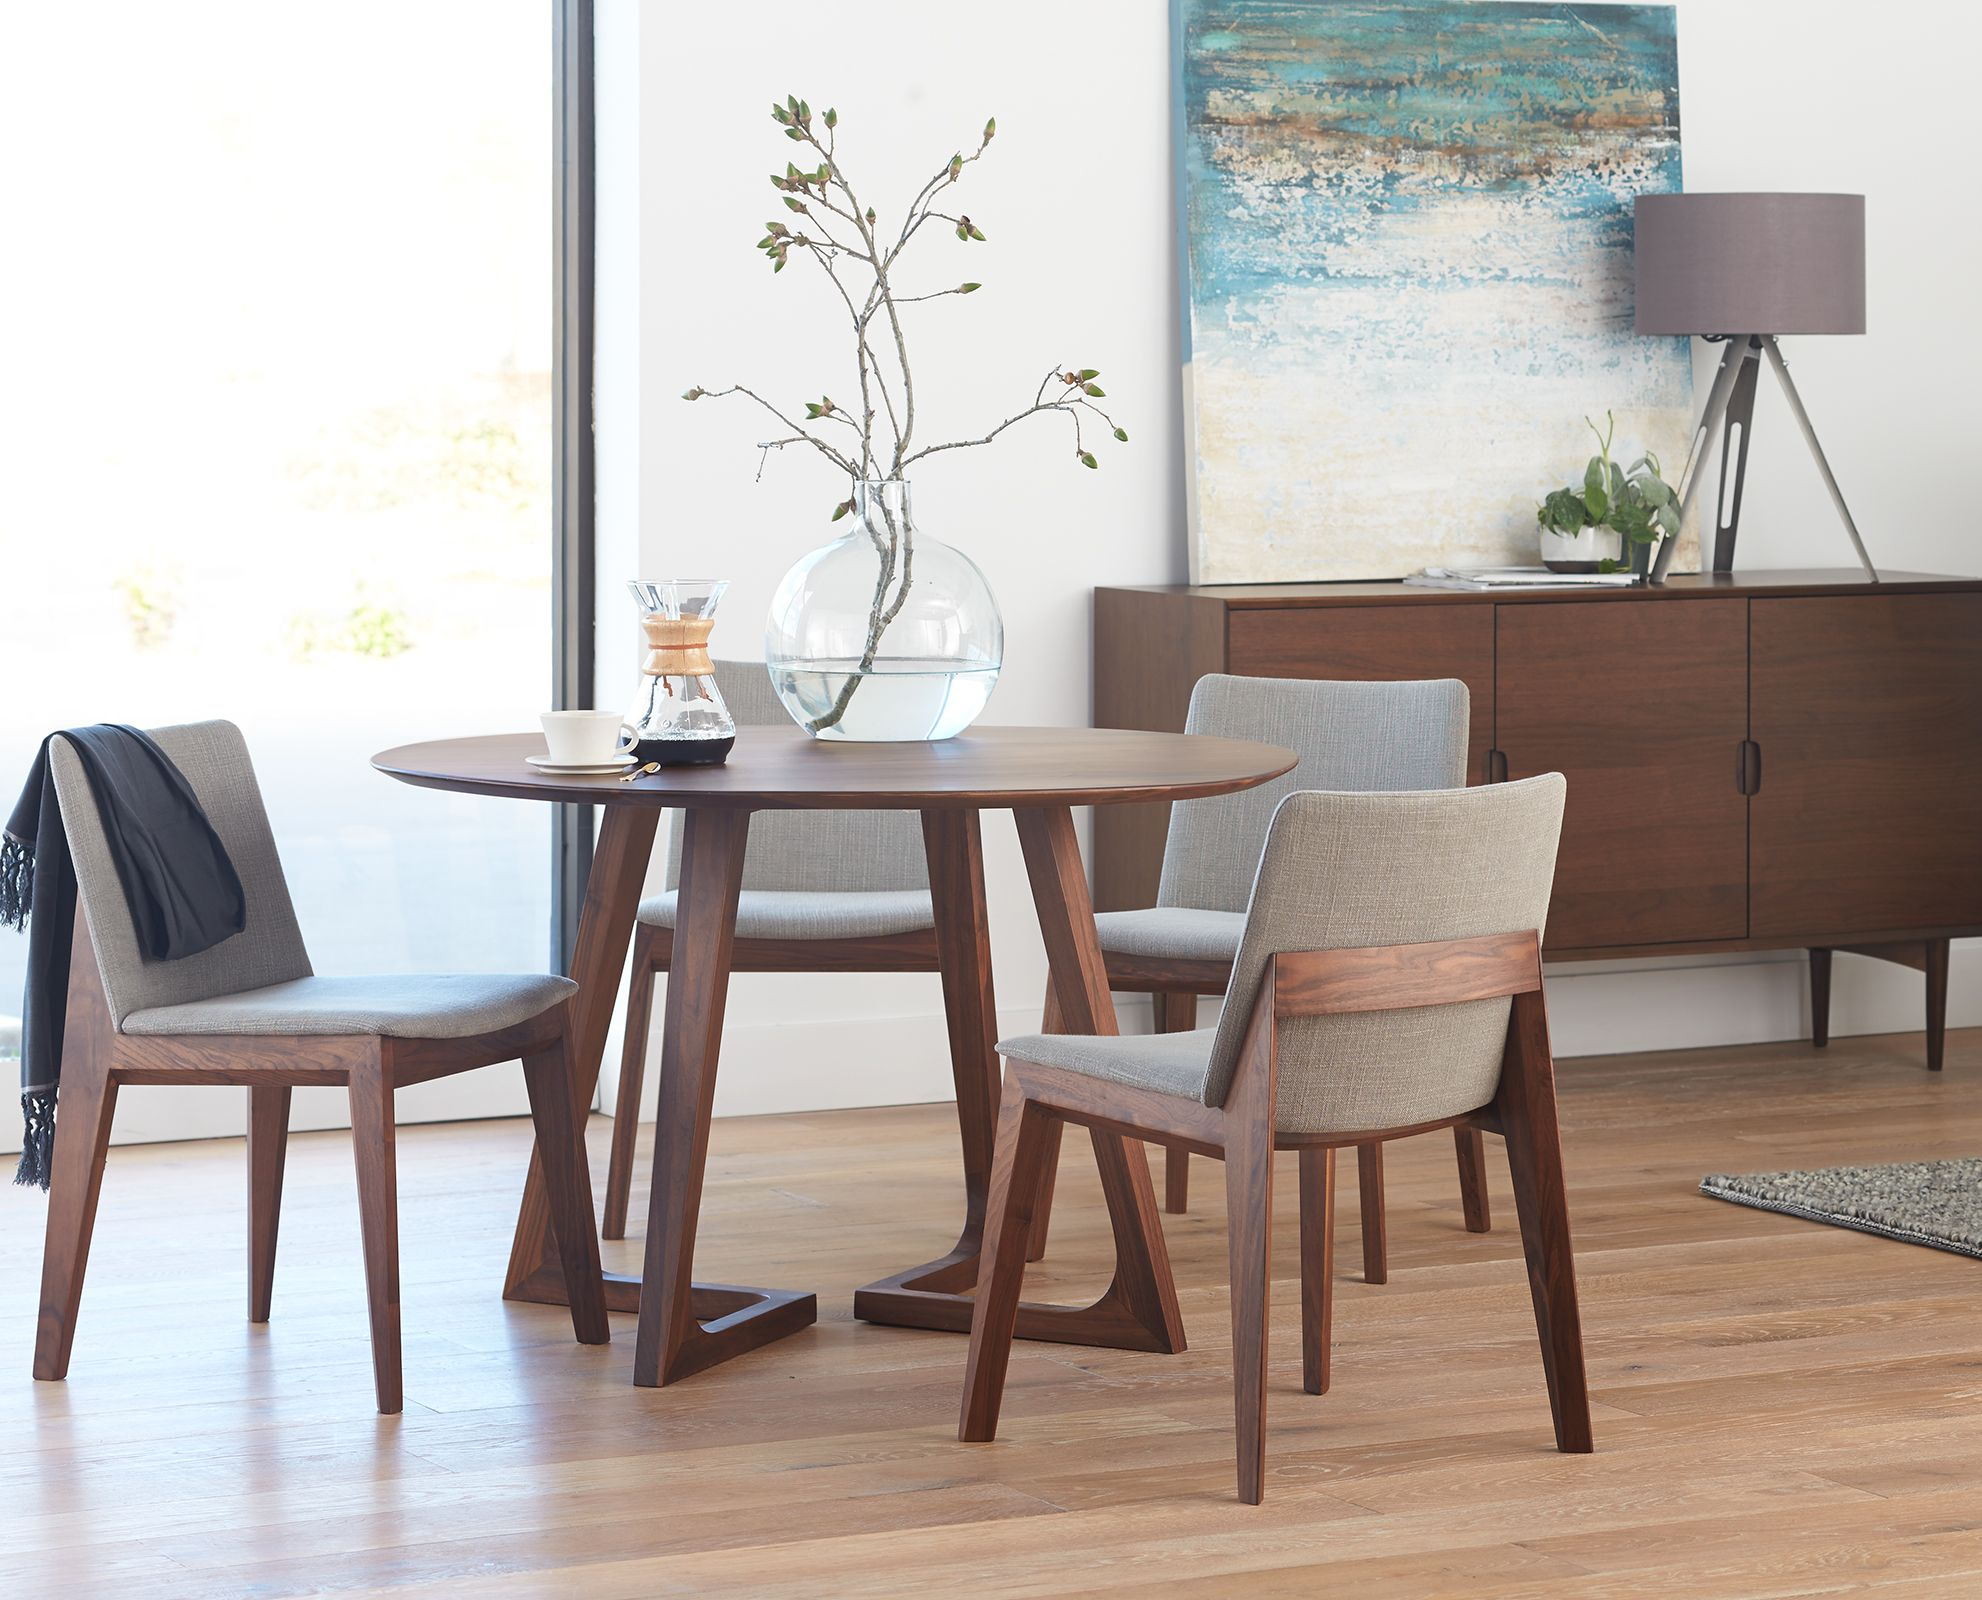 round table with chairs staples osgood chair and from dania condo pinterest